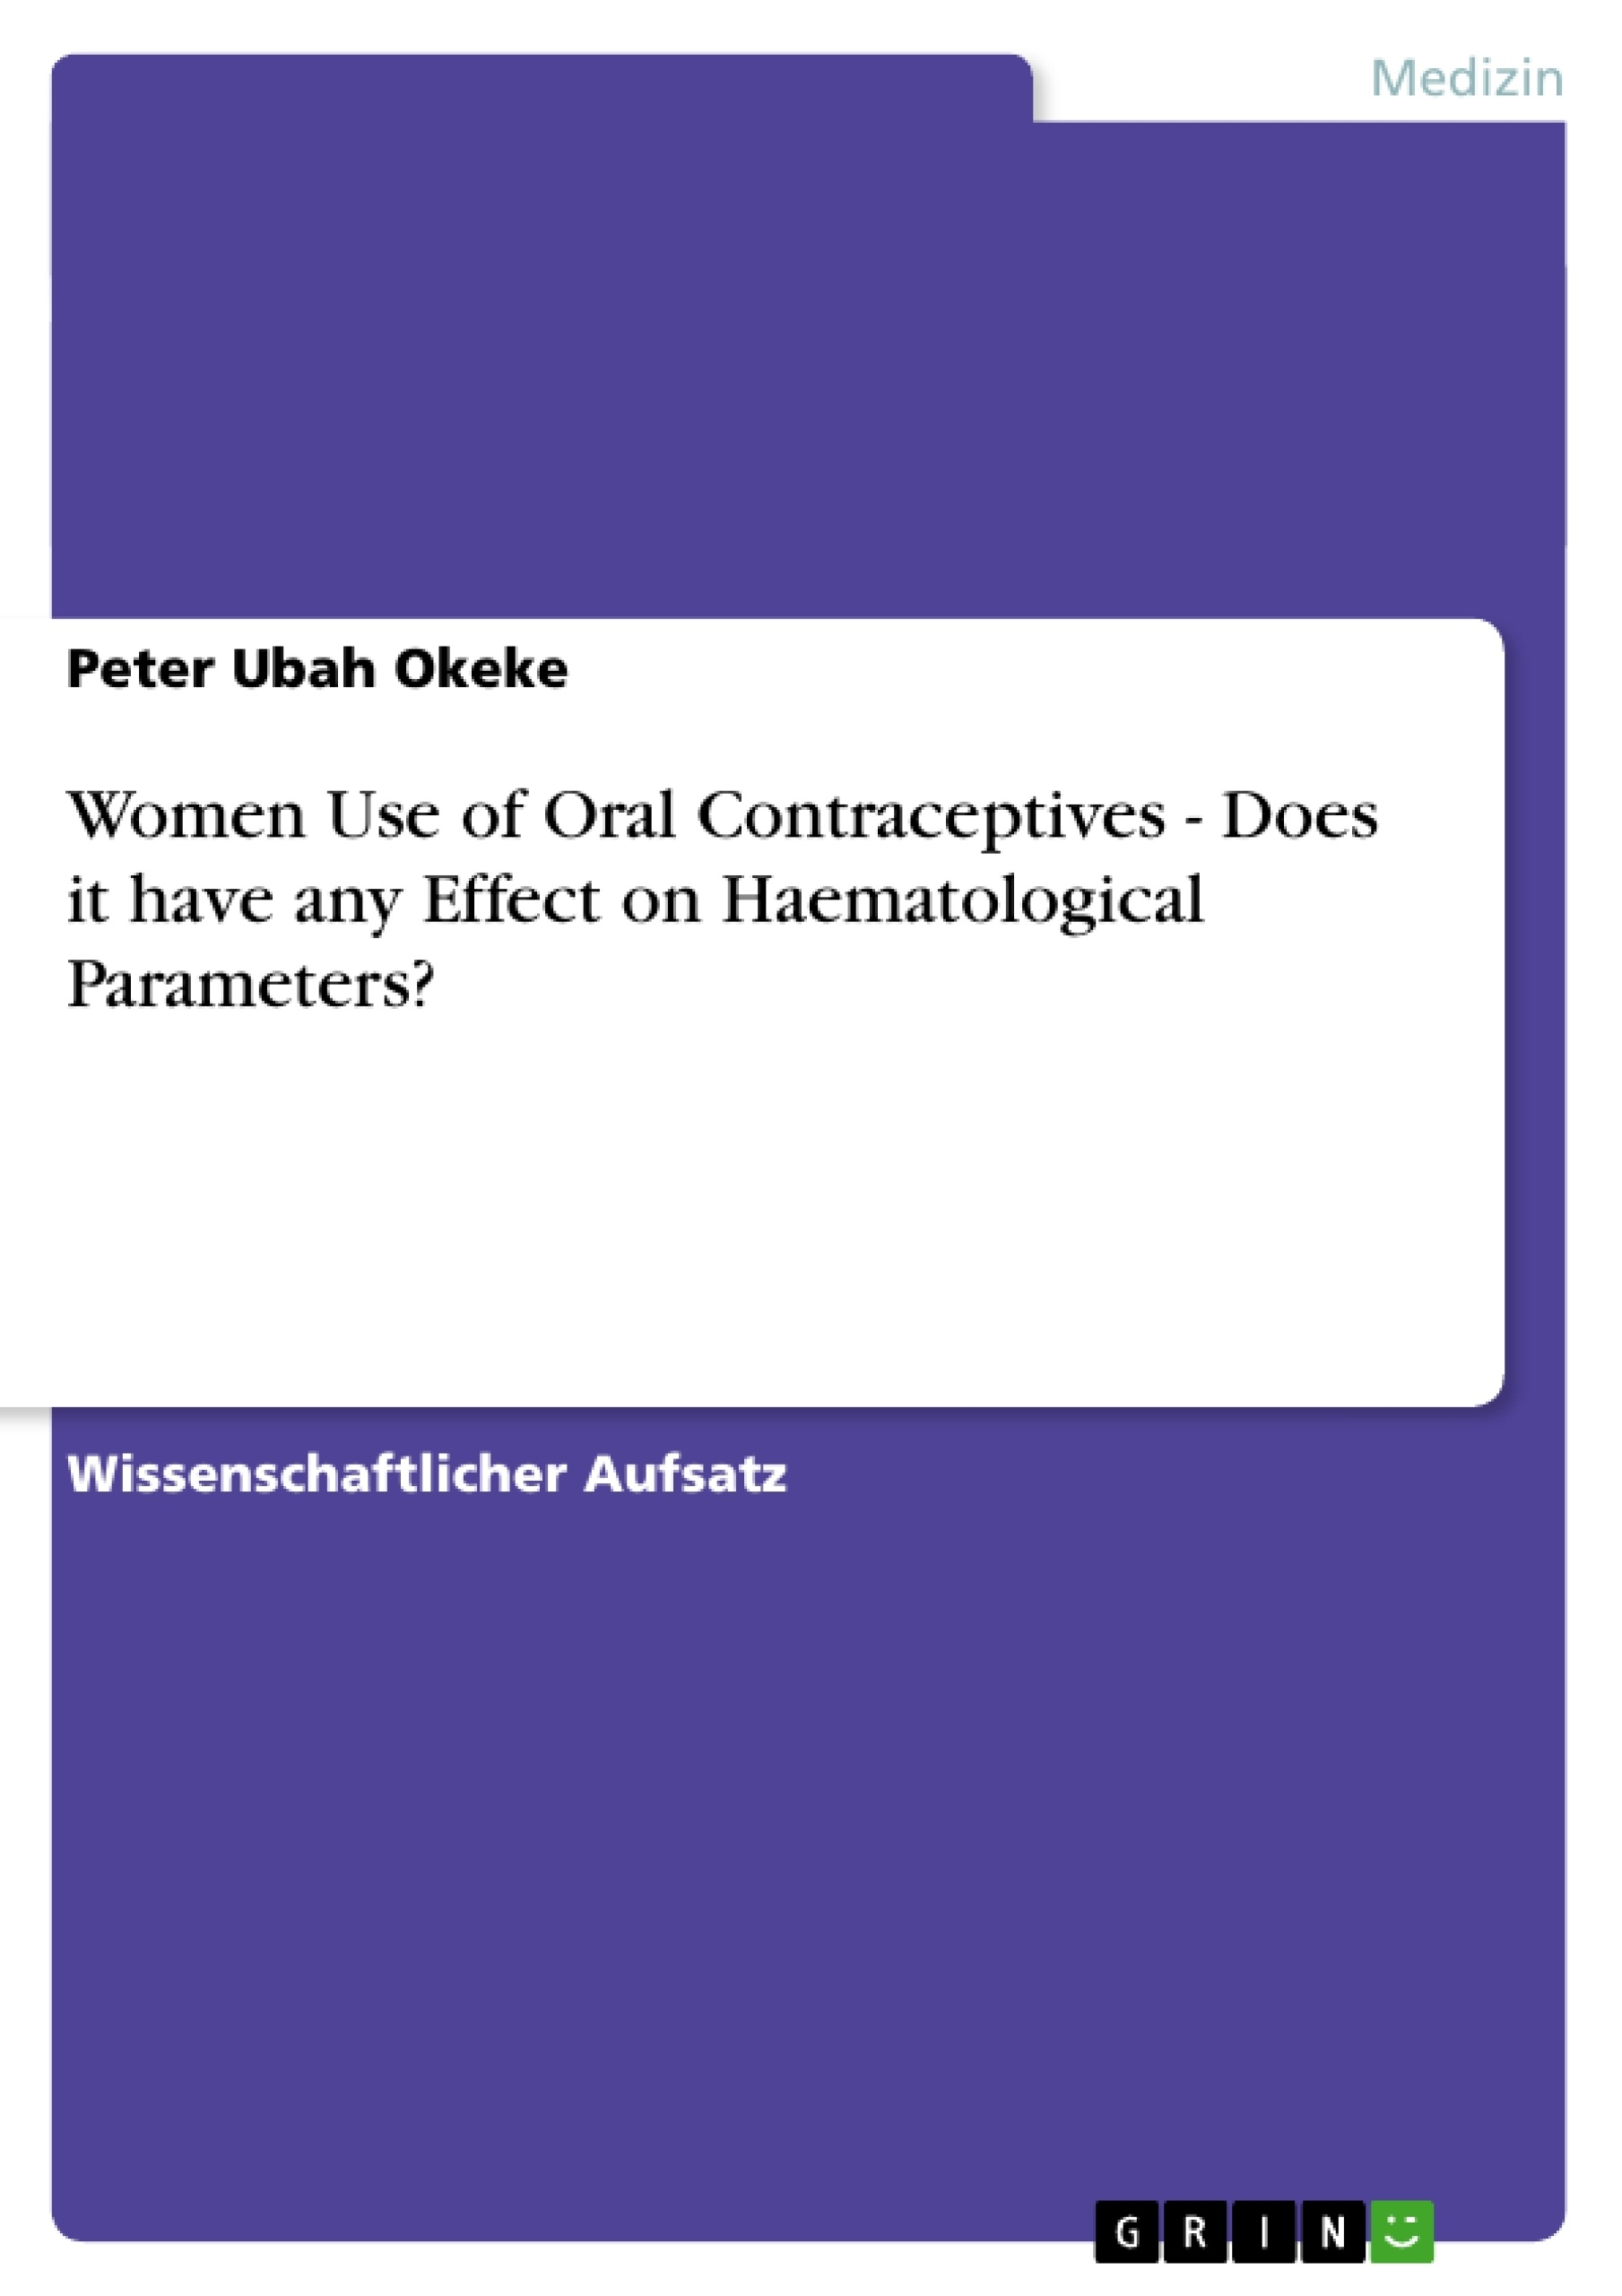 Titel: Women Use of Oral Contraceptives - Does it have any Effect on Haematological Parameters?